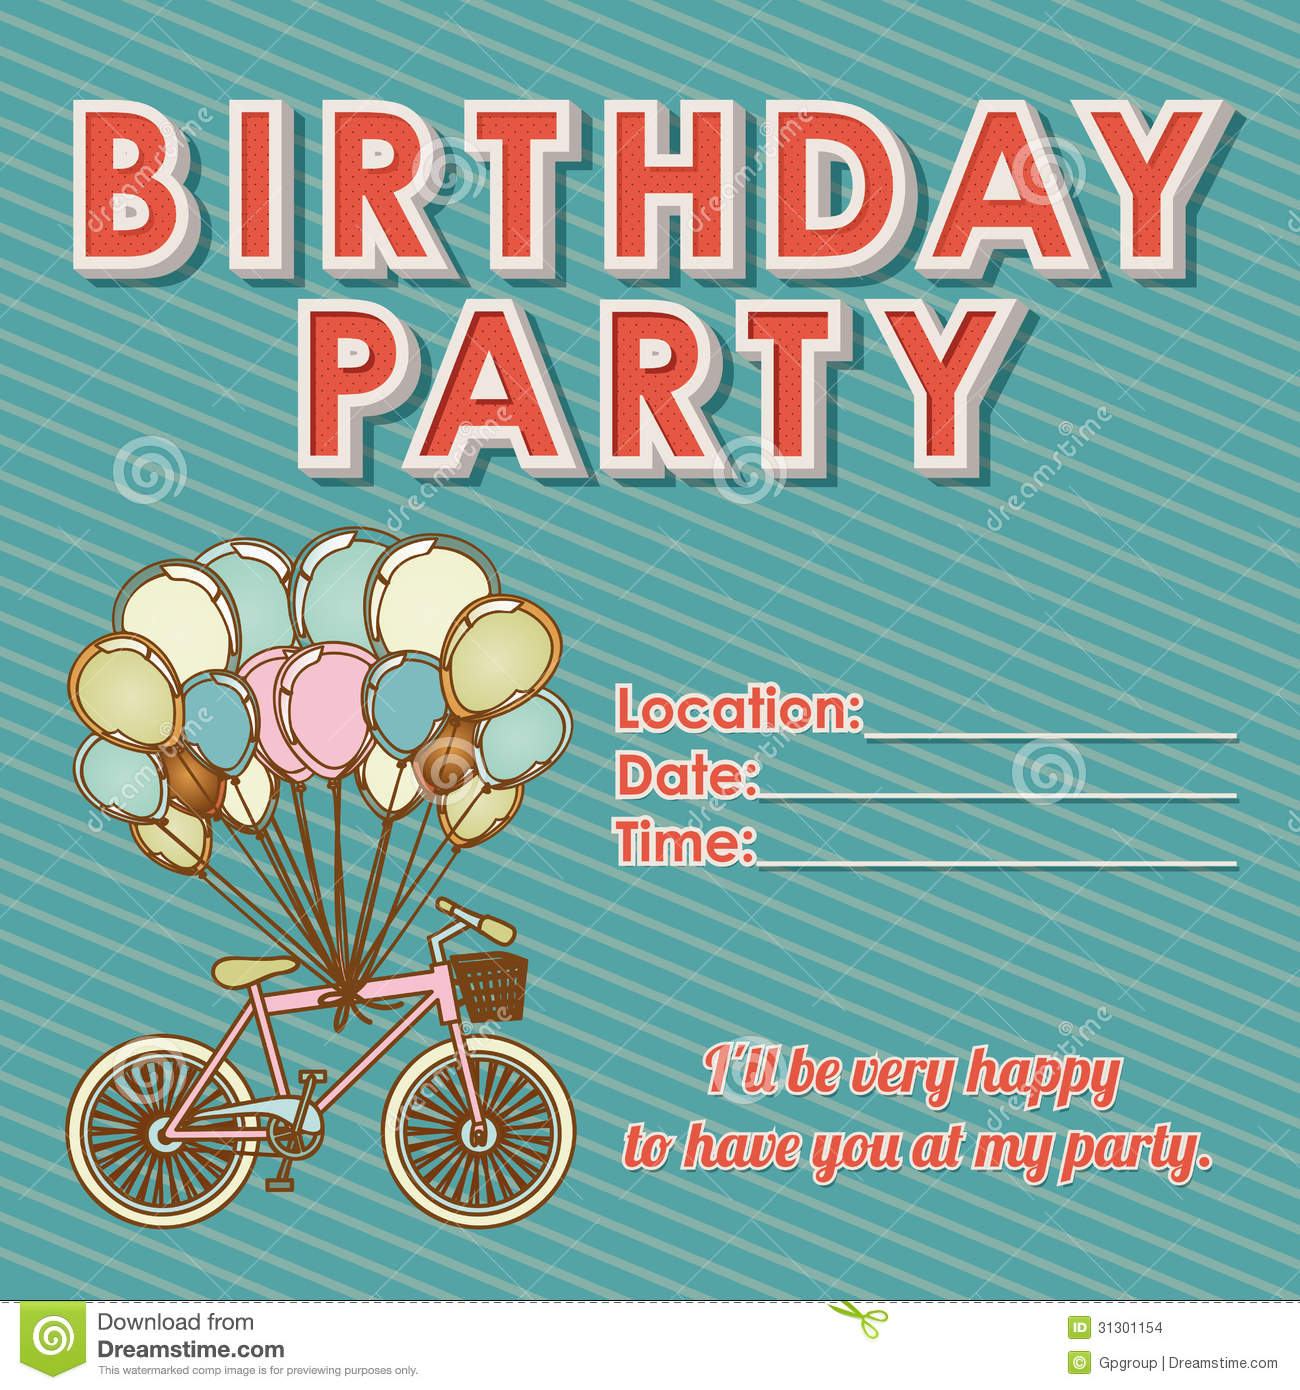 12 birthday invitation vector images happy birthday party childs birthday invitation stopboris Choice Image